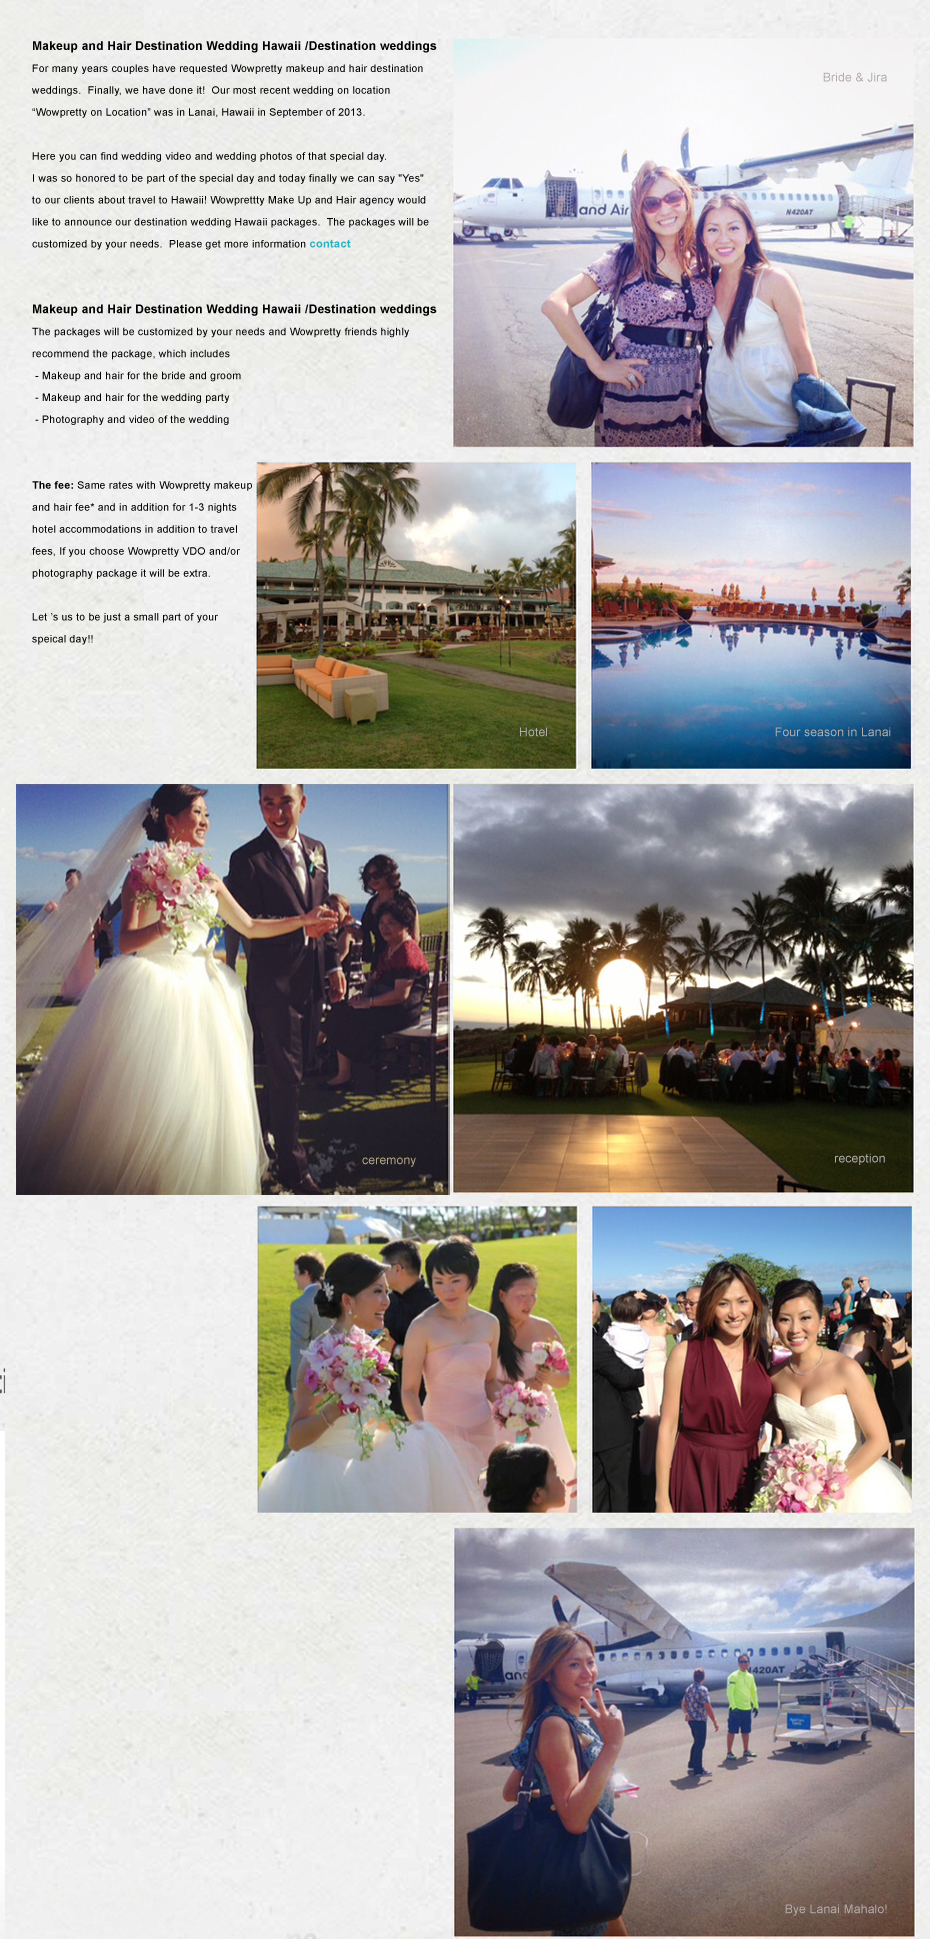 Wowpretty Destination Wedding Hawaii